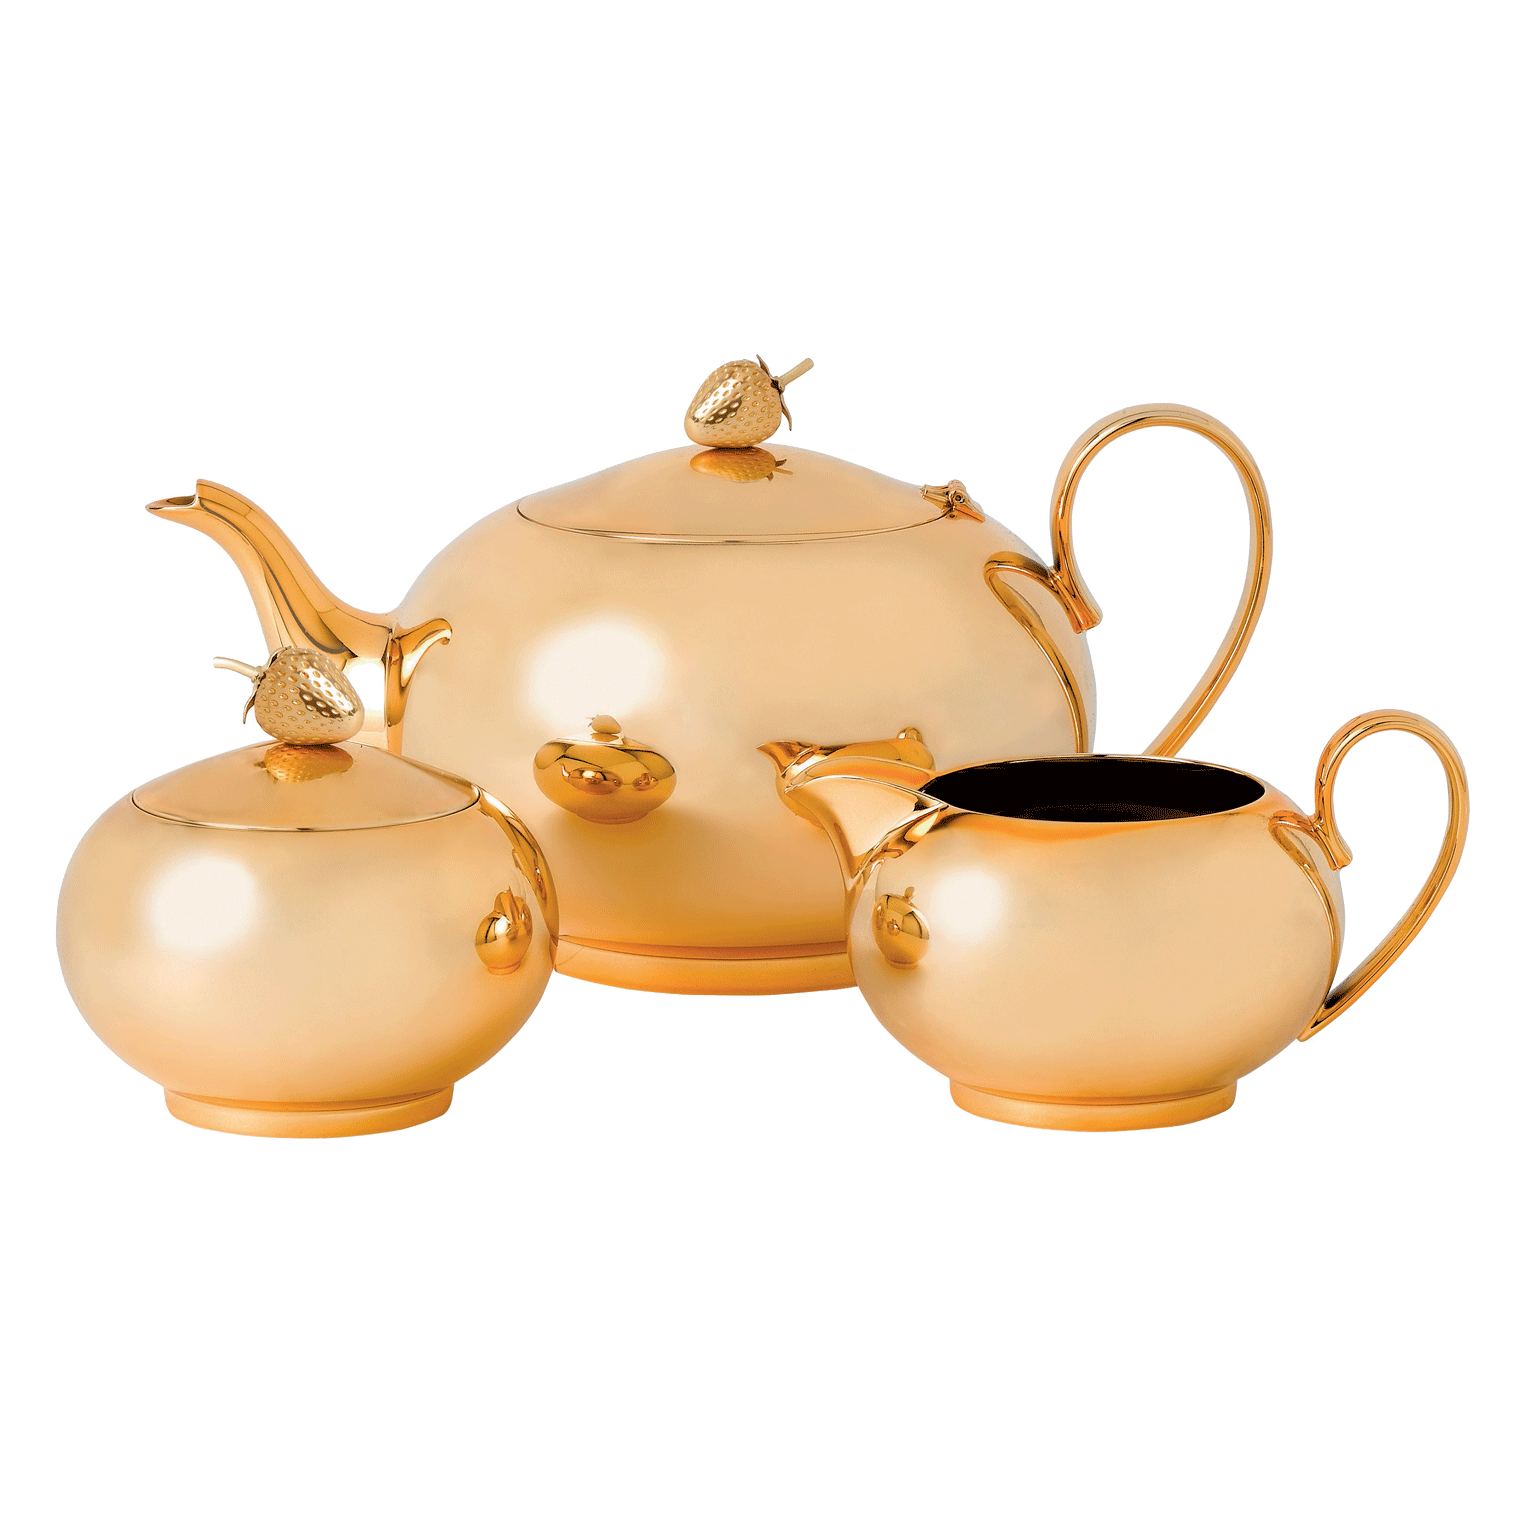 Tea Set Png Transparent Tea Set Png Images